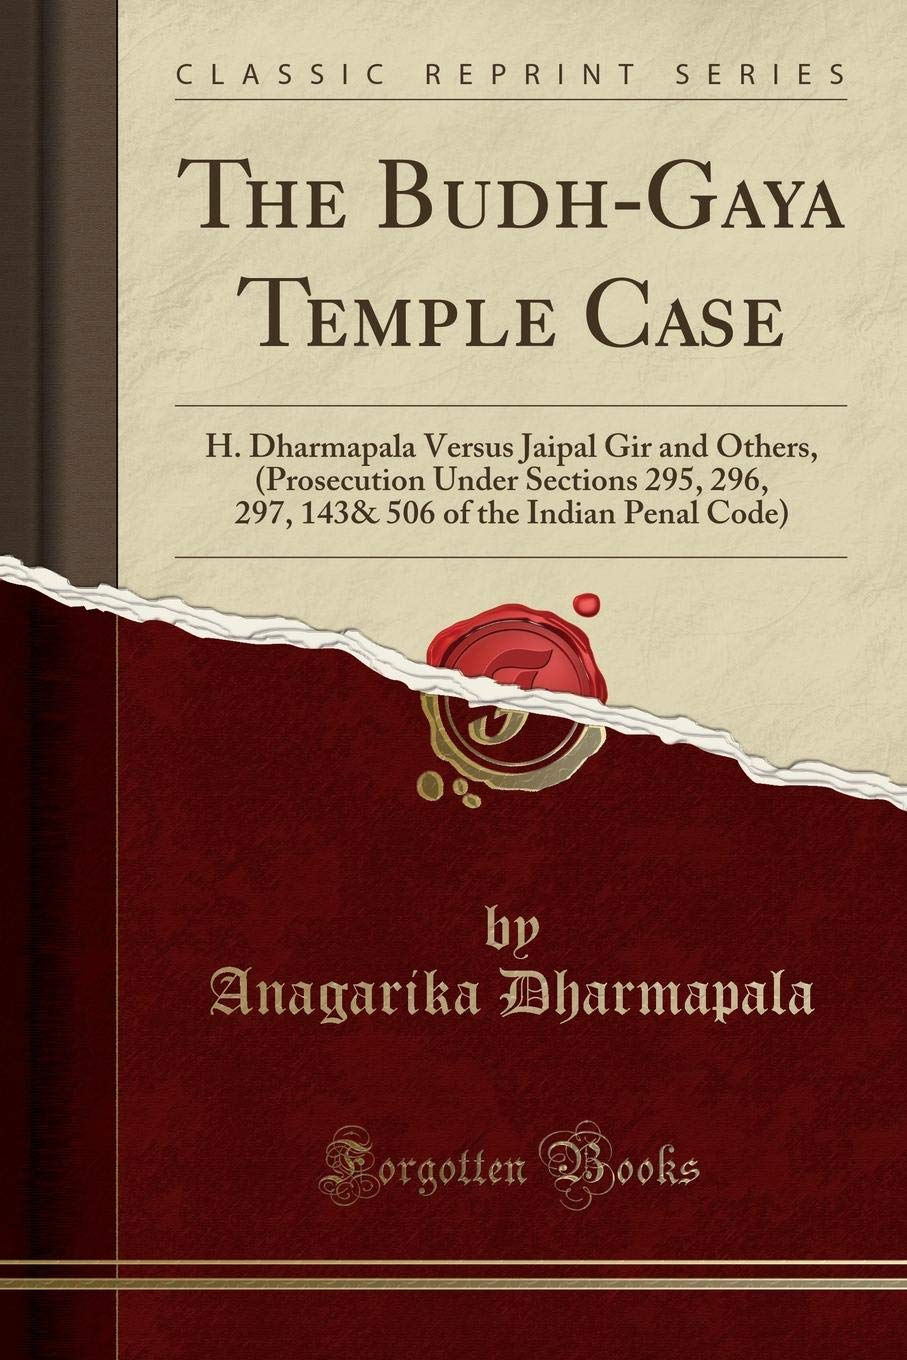 Read Online The Budh-Gaya Temple Case: H. Dharmapala Versus Jaipal Gir and Others, (Prosecution Under Sections 295, 296, 297, 143& 506 of the Indian Penal Code) (Classic Reprint) pdf